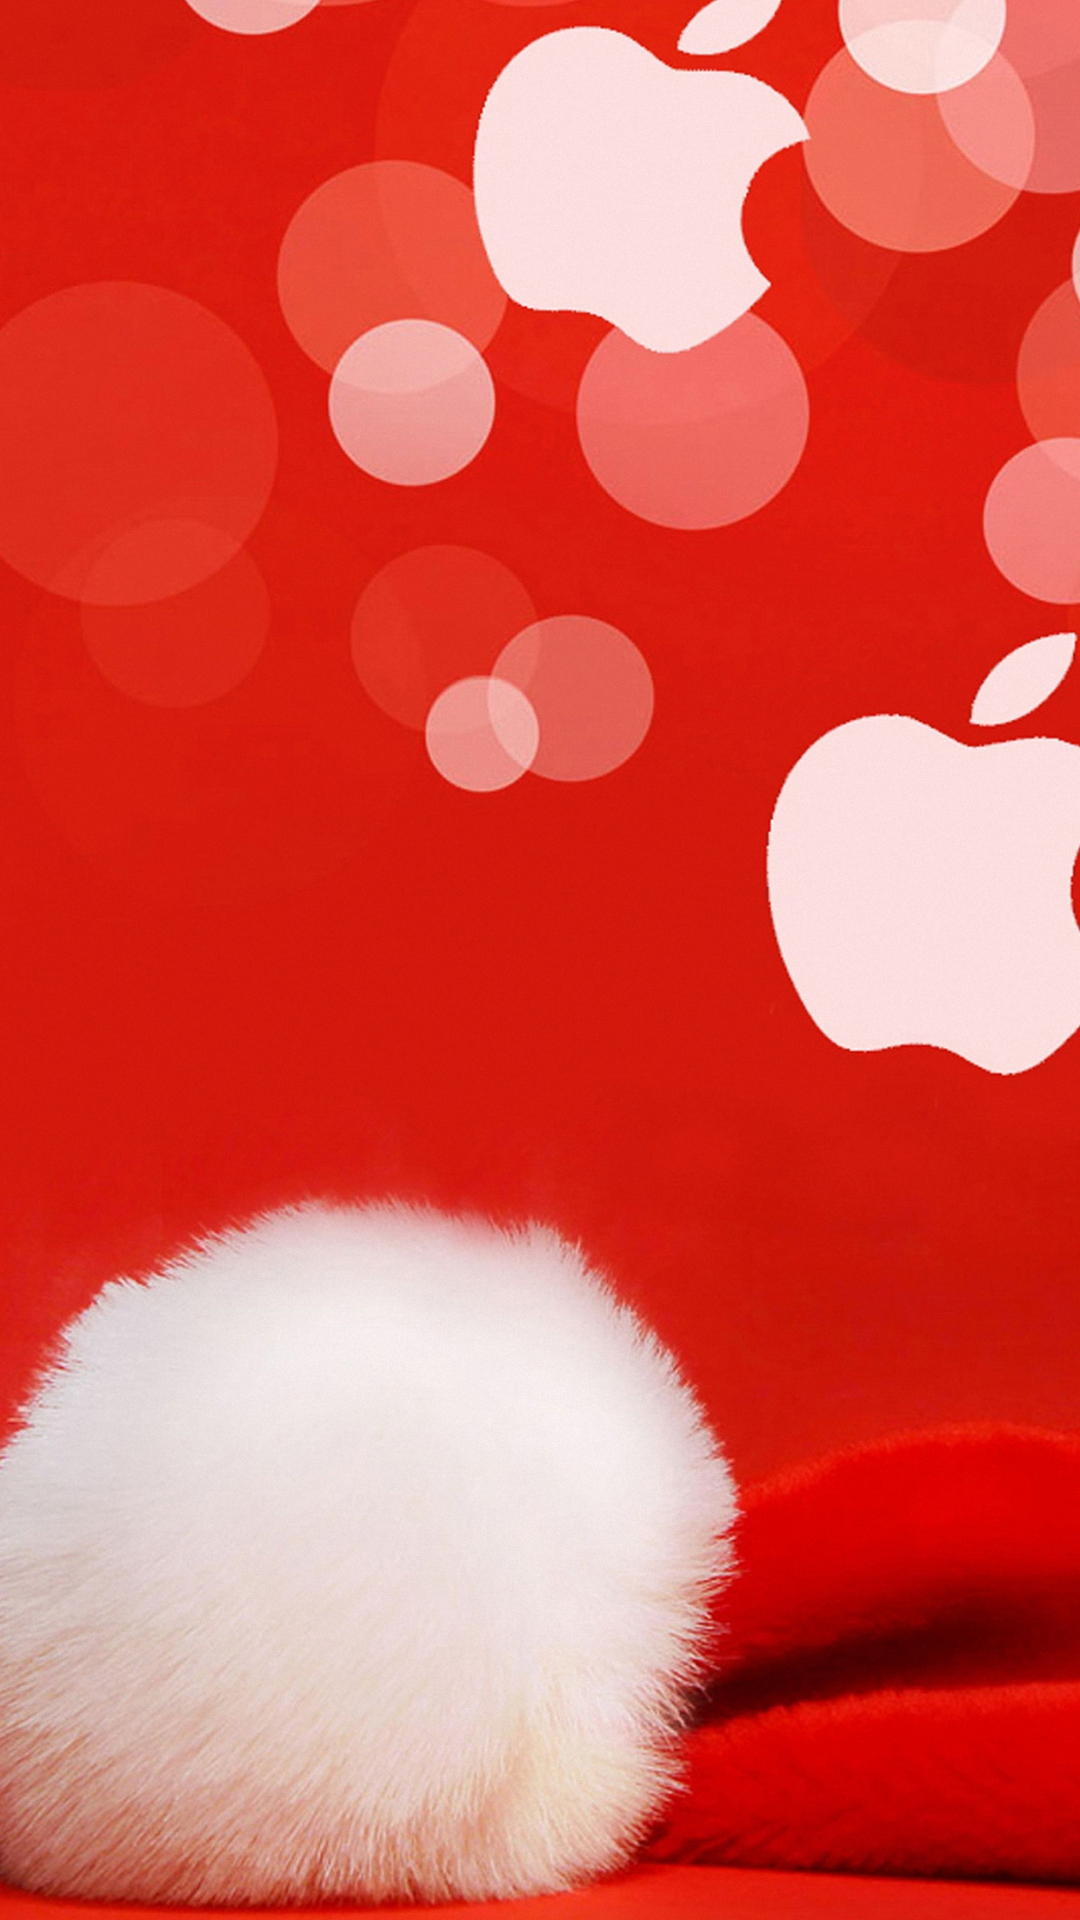 6s plus apple christmas iphone 6s plus wallpapers hd 1080x1920